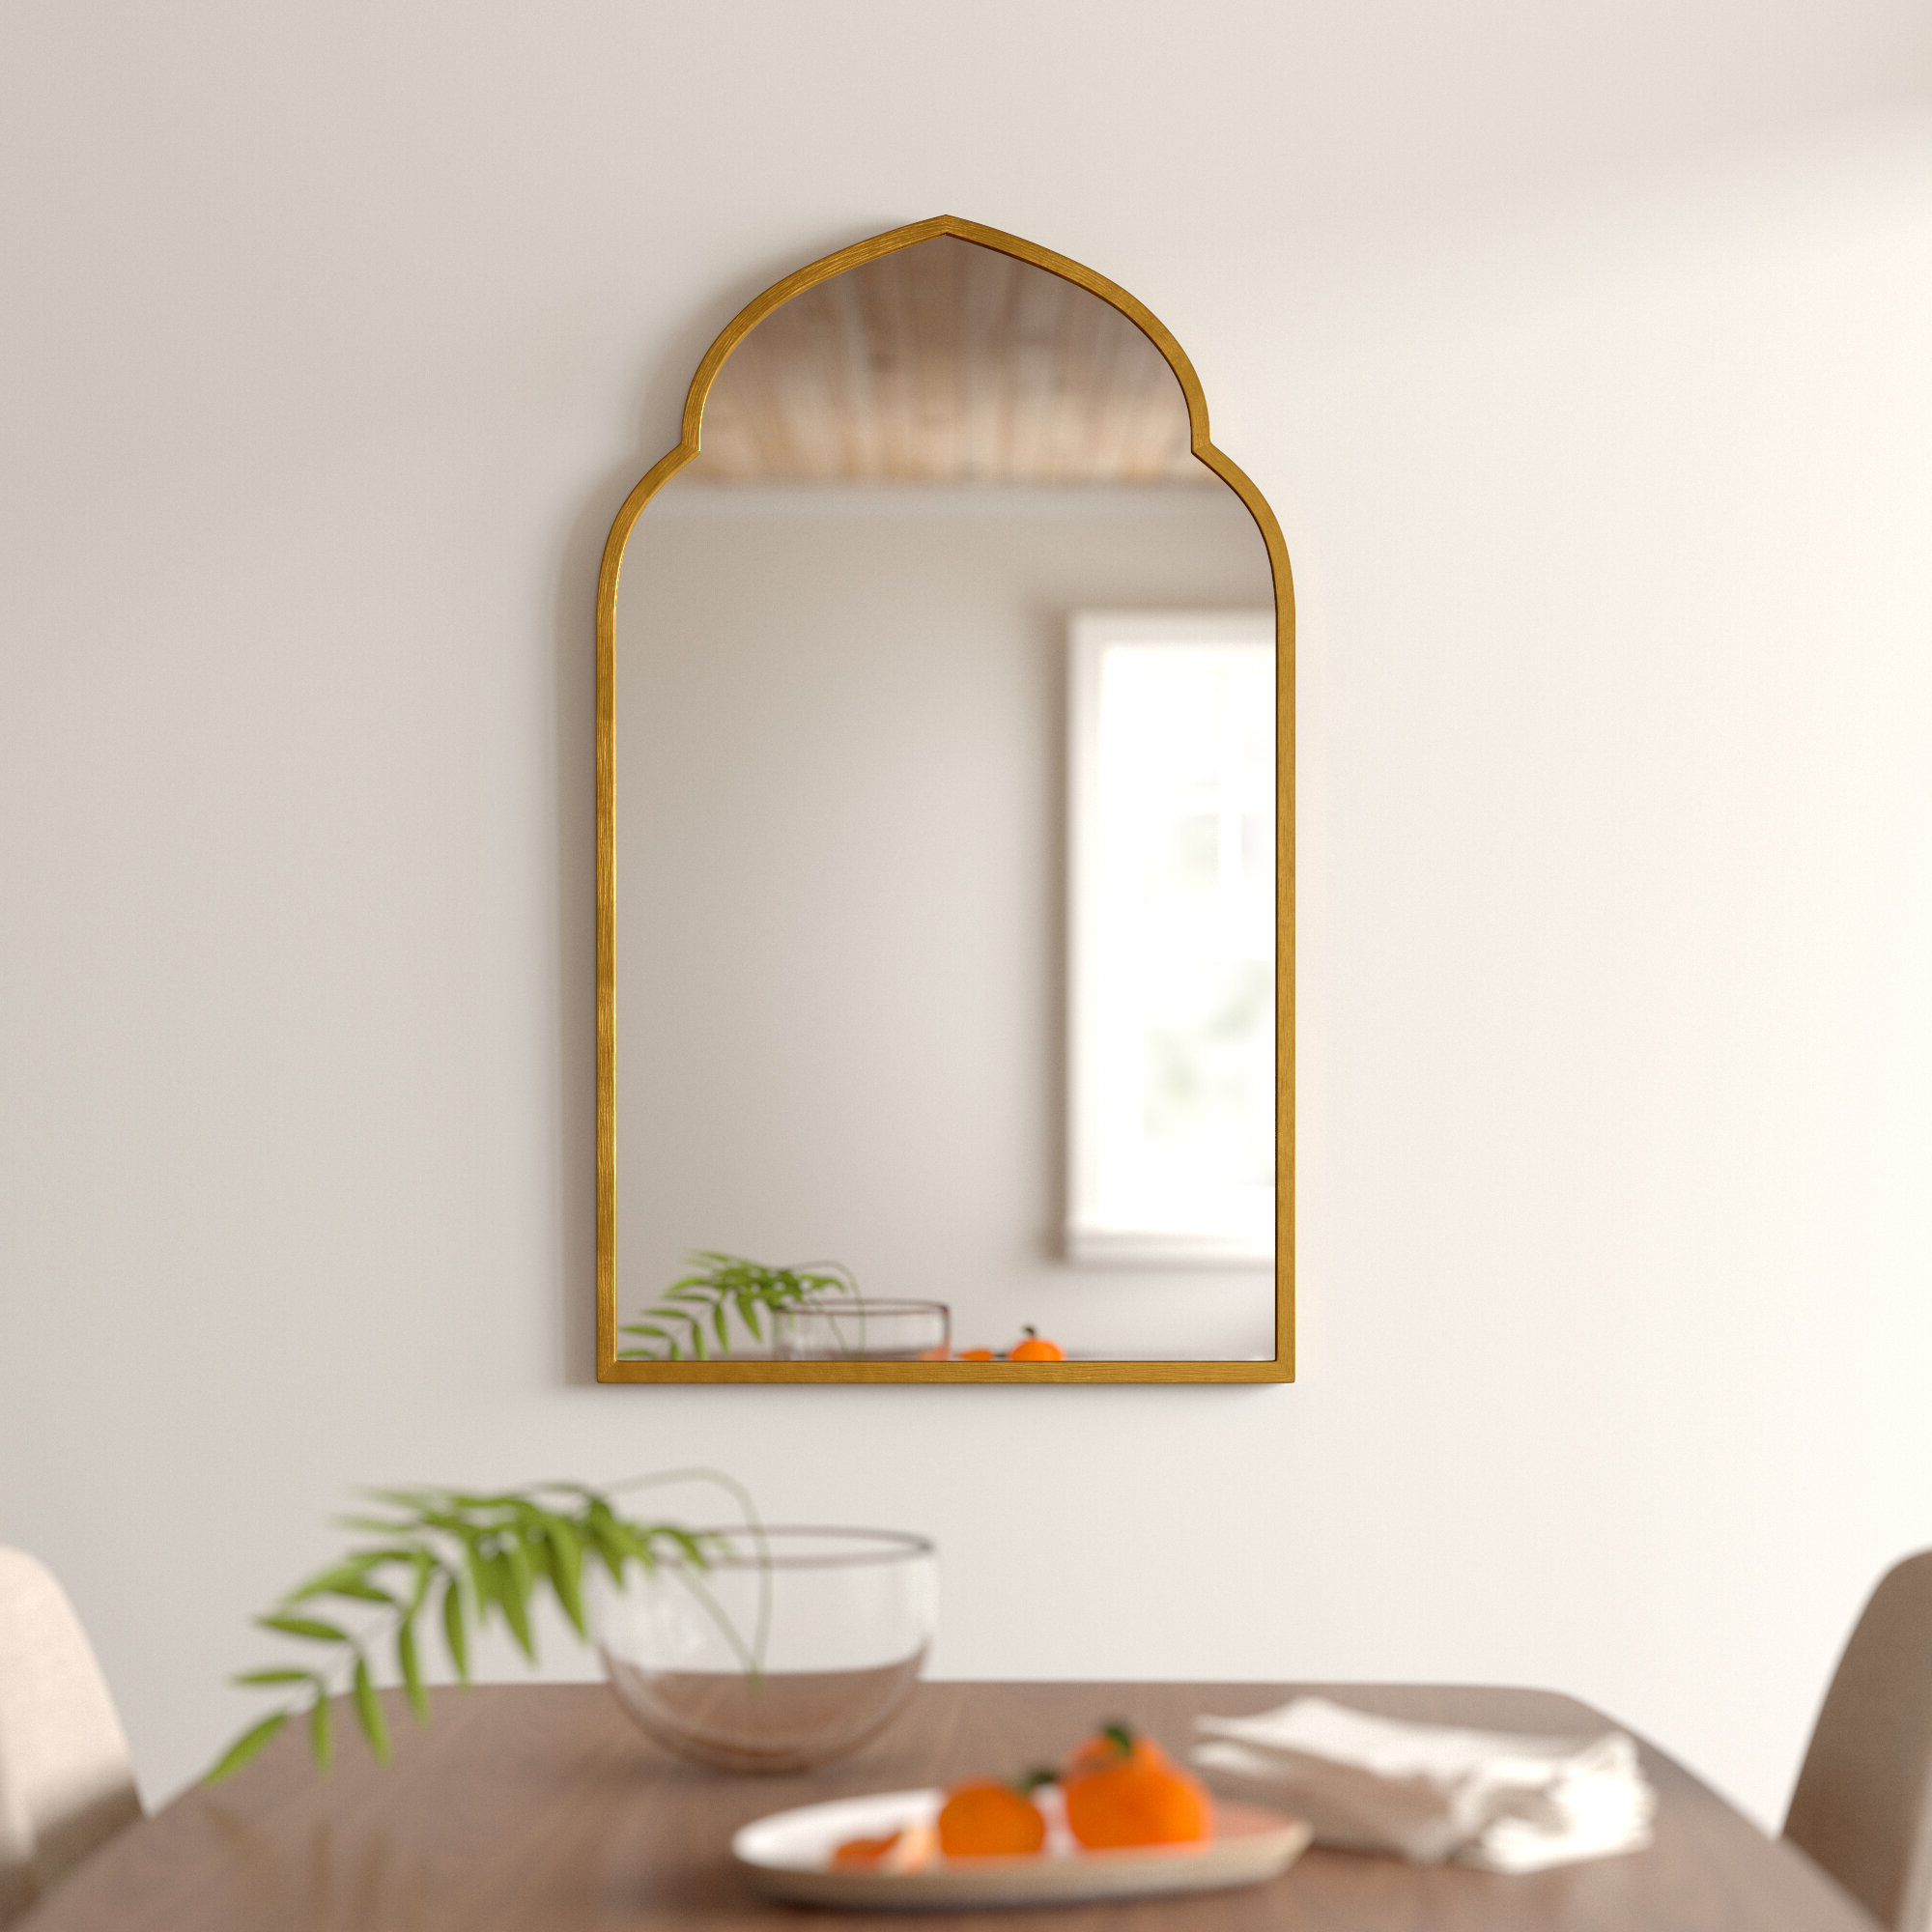 Gold Arch Wall Mirrors Intended For Most Up To Date Gold Arch Wall Mirror (View 13 of 20)